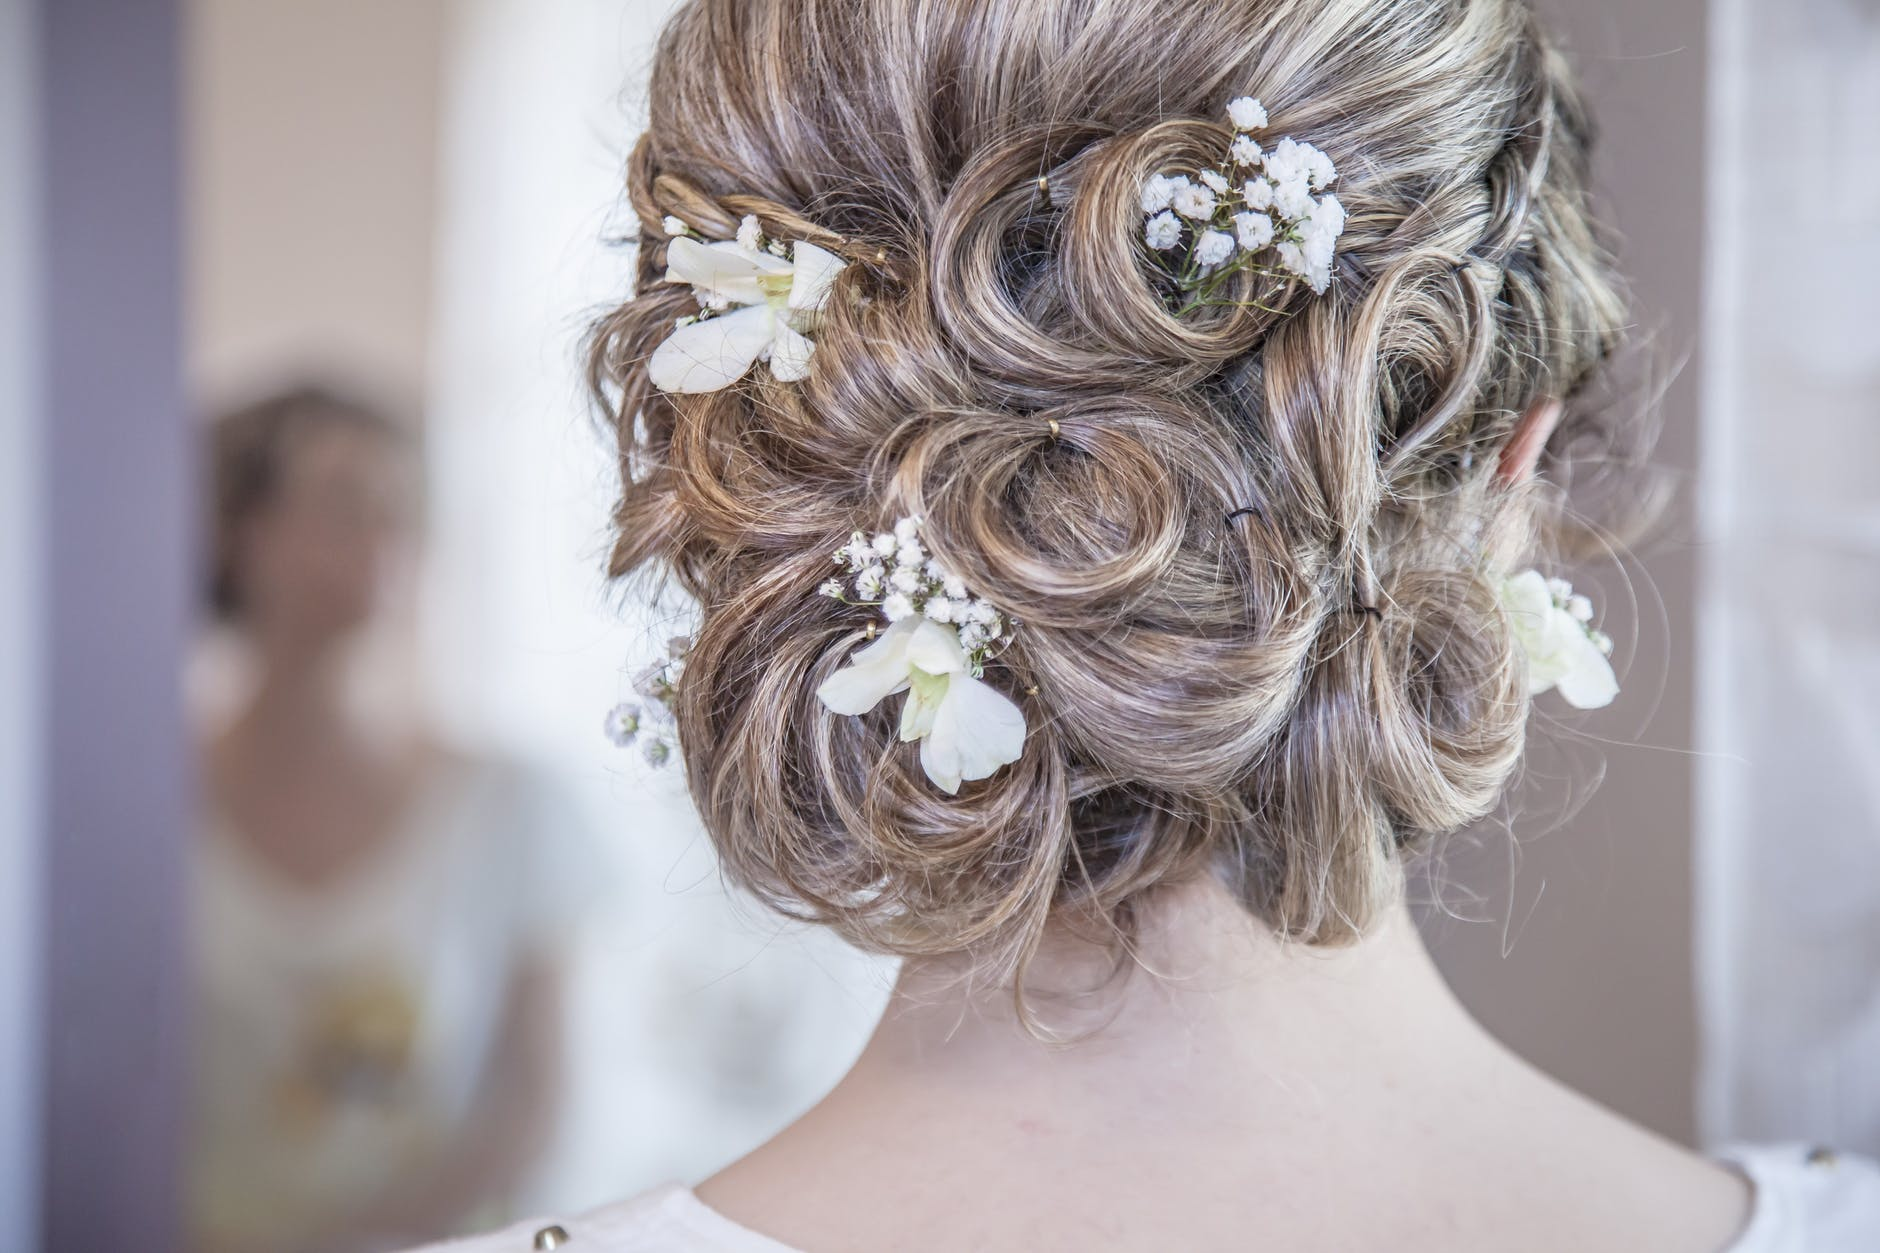 twisty-chingon-latest-hair-designs-trends-creaticve-hairstyle-flower-pins